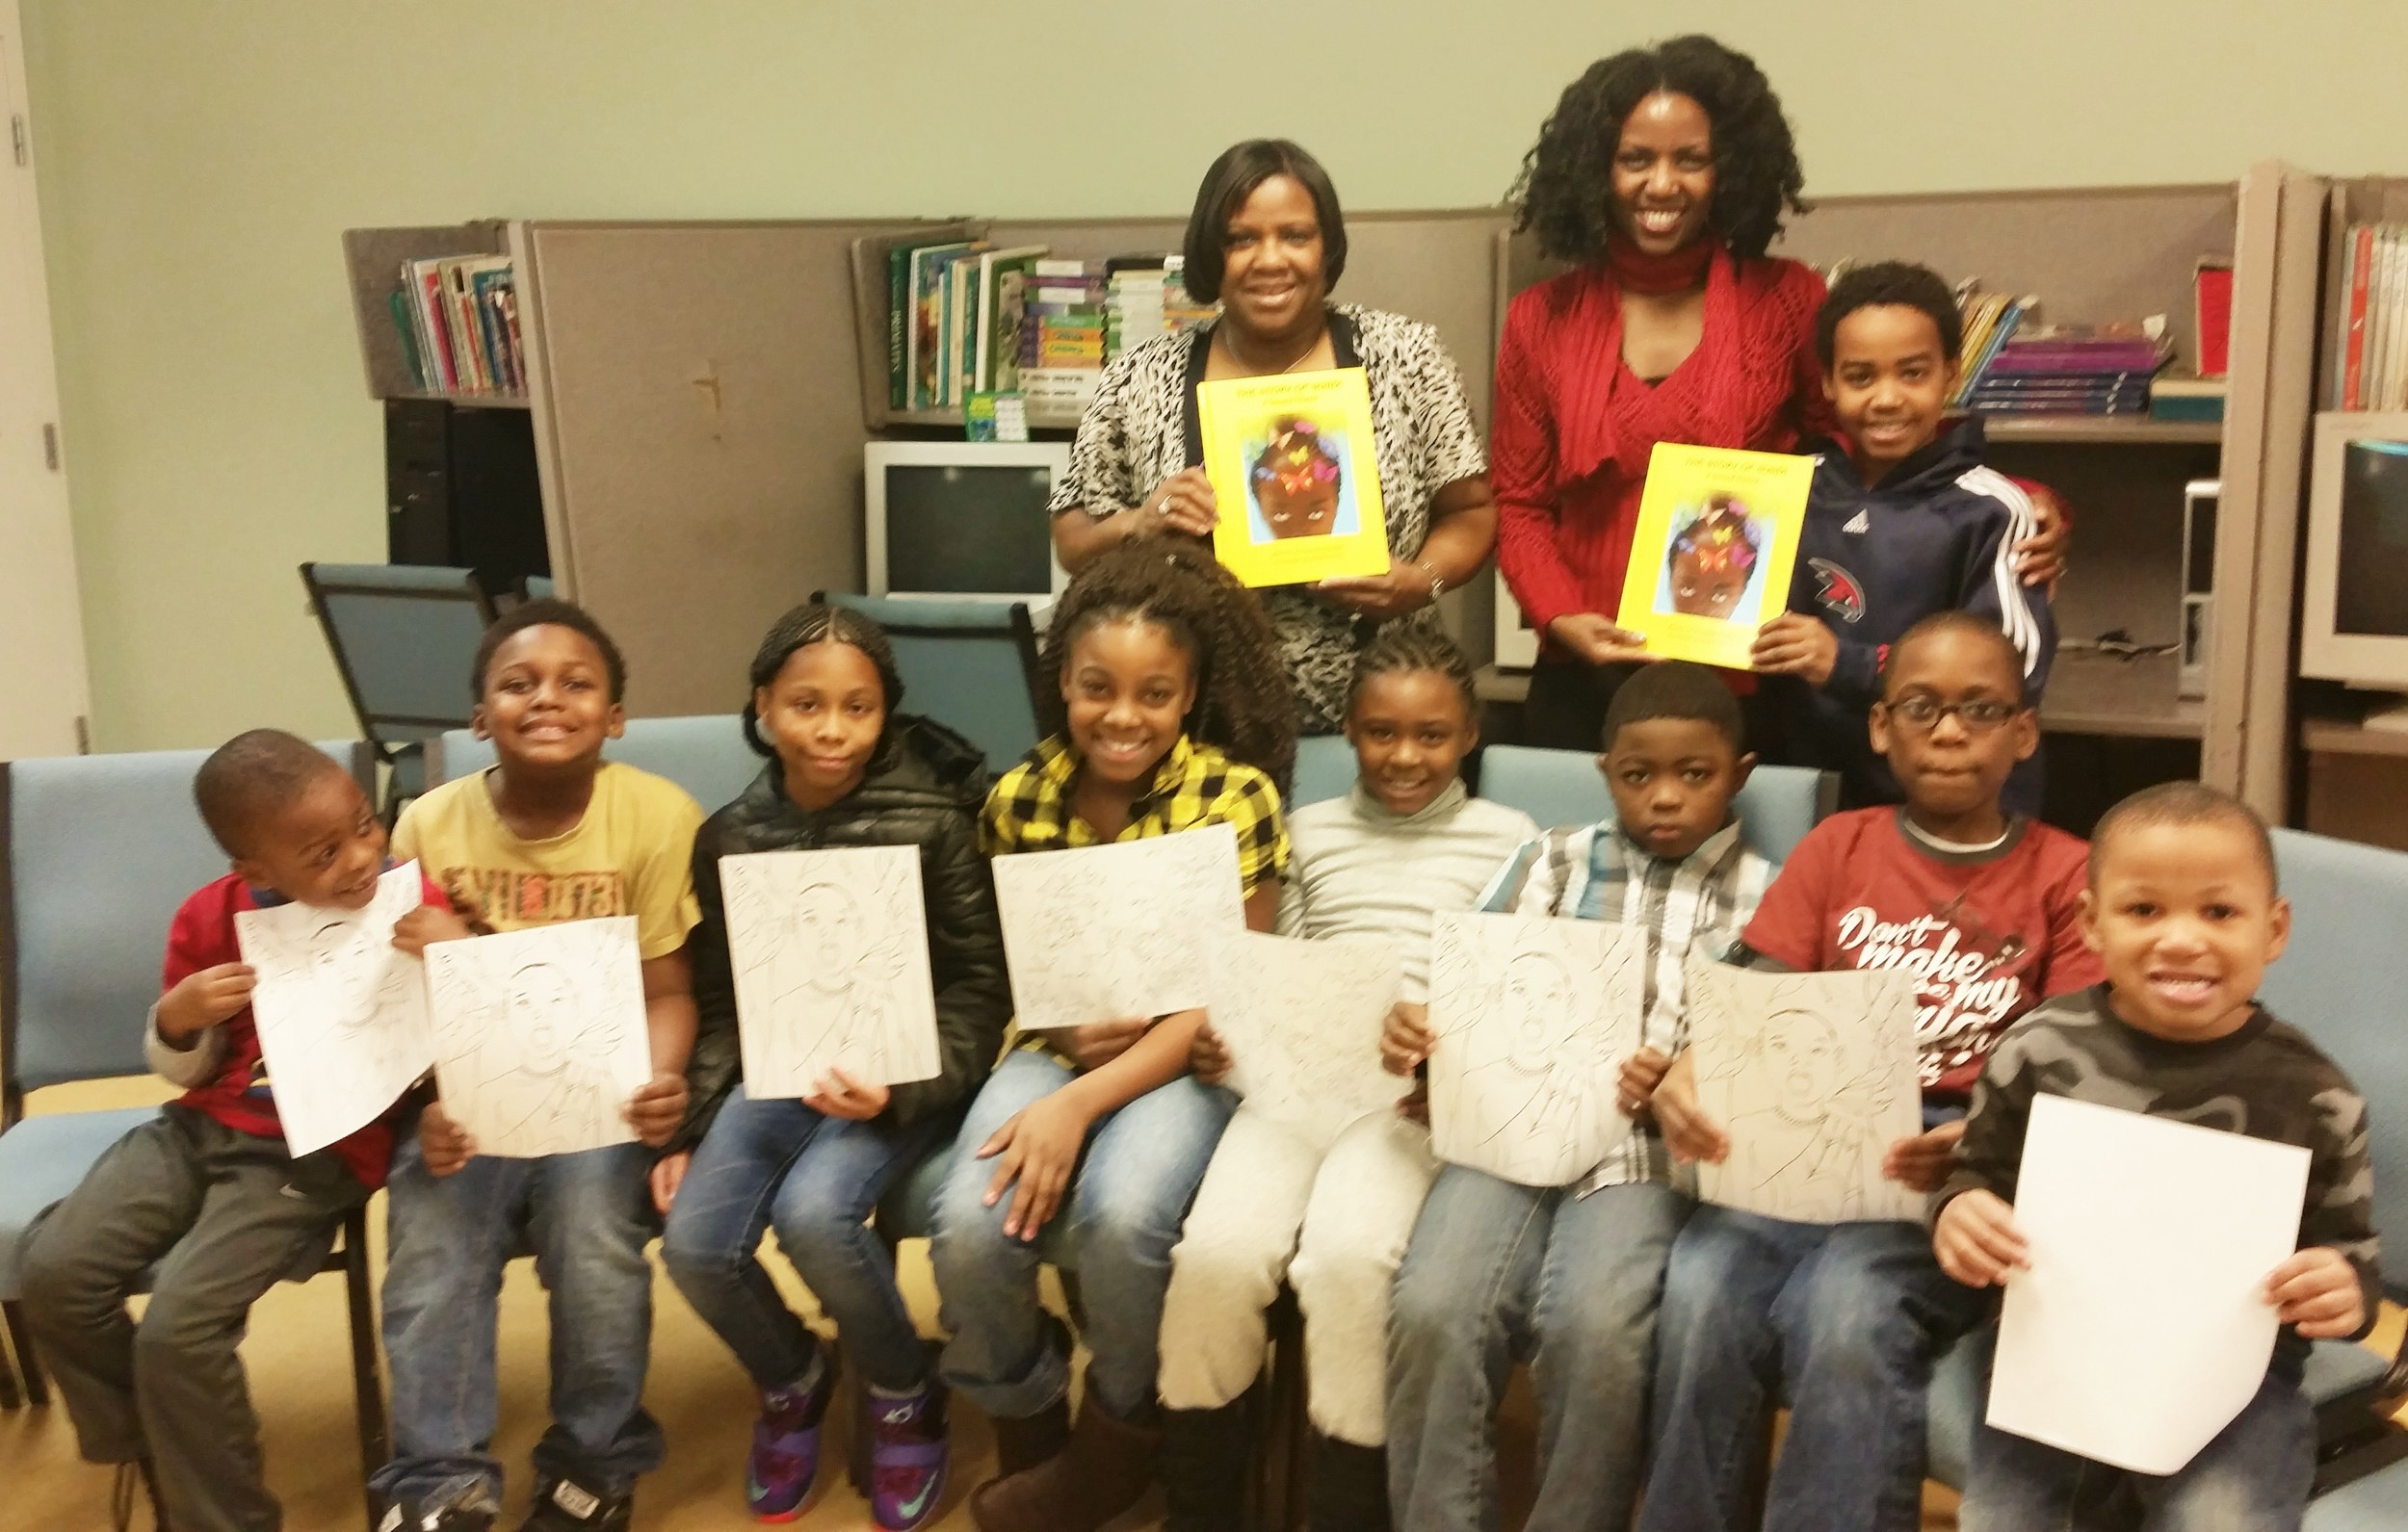 Say cheese!  Each child is holding a take-home coloring sheet of an illustration from the book.